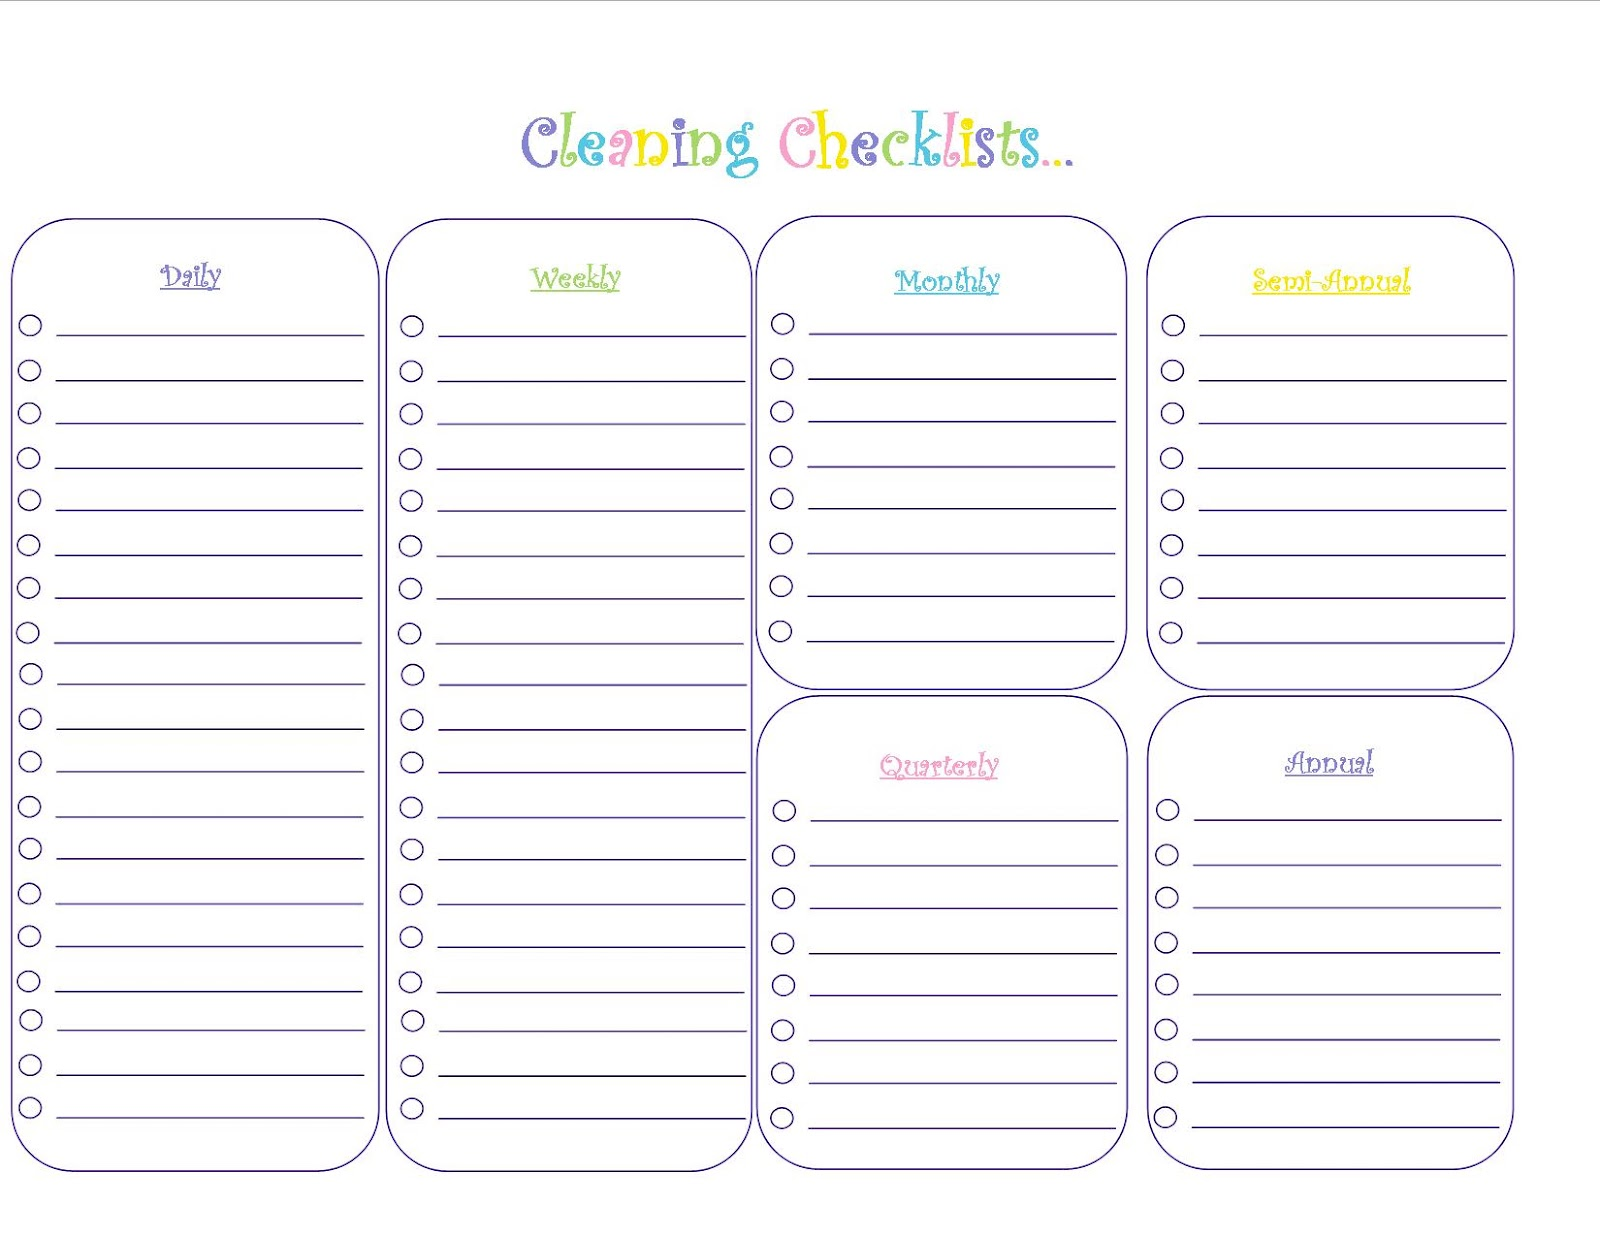 Daycare cleaning checklist templates 28 images house cleaning daycare cleaning checklist templates my krazy family binder pronofoot35fo Image collections